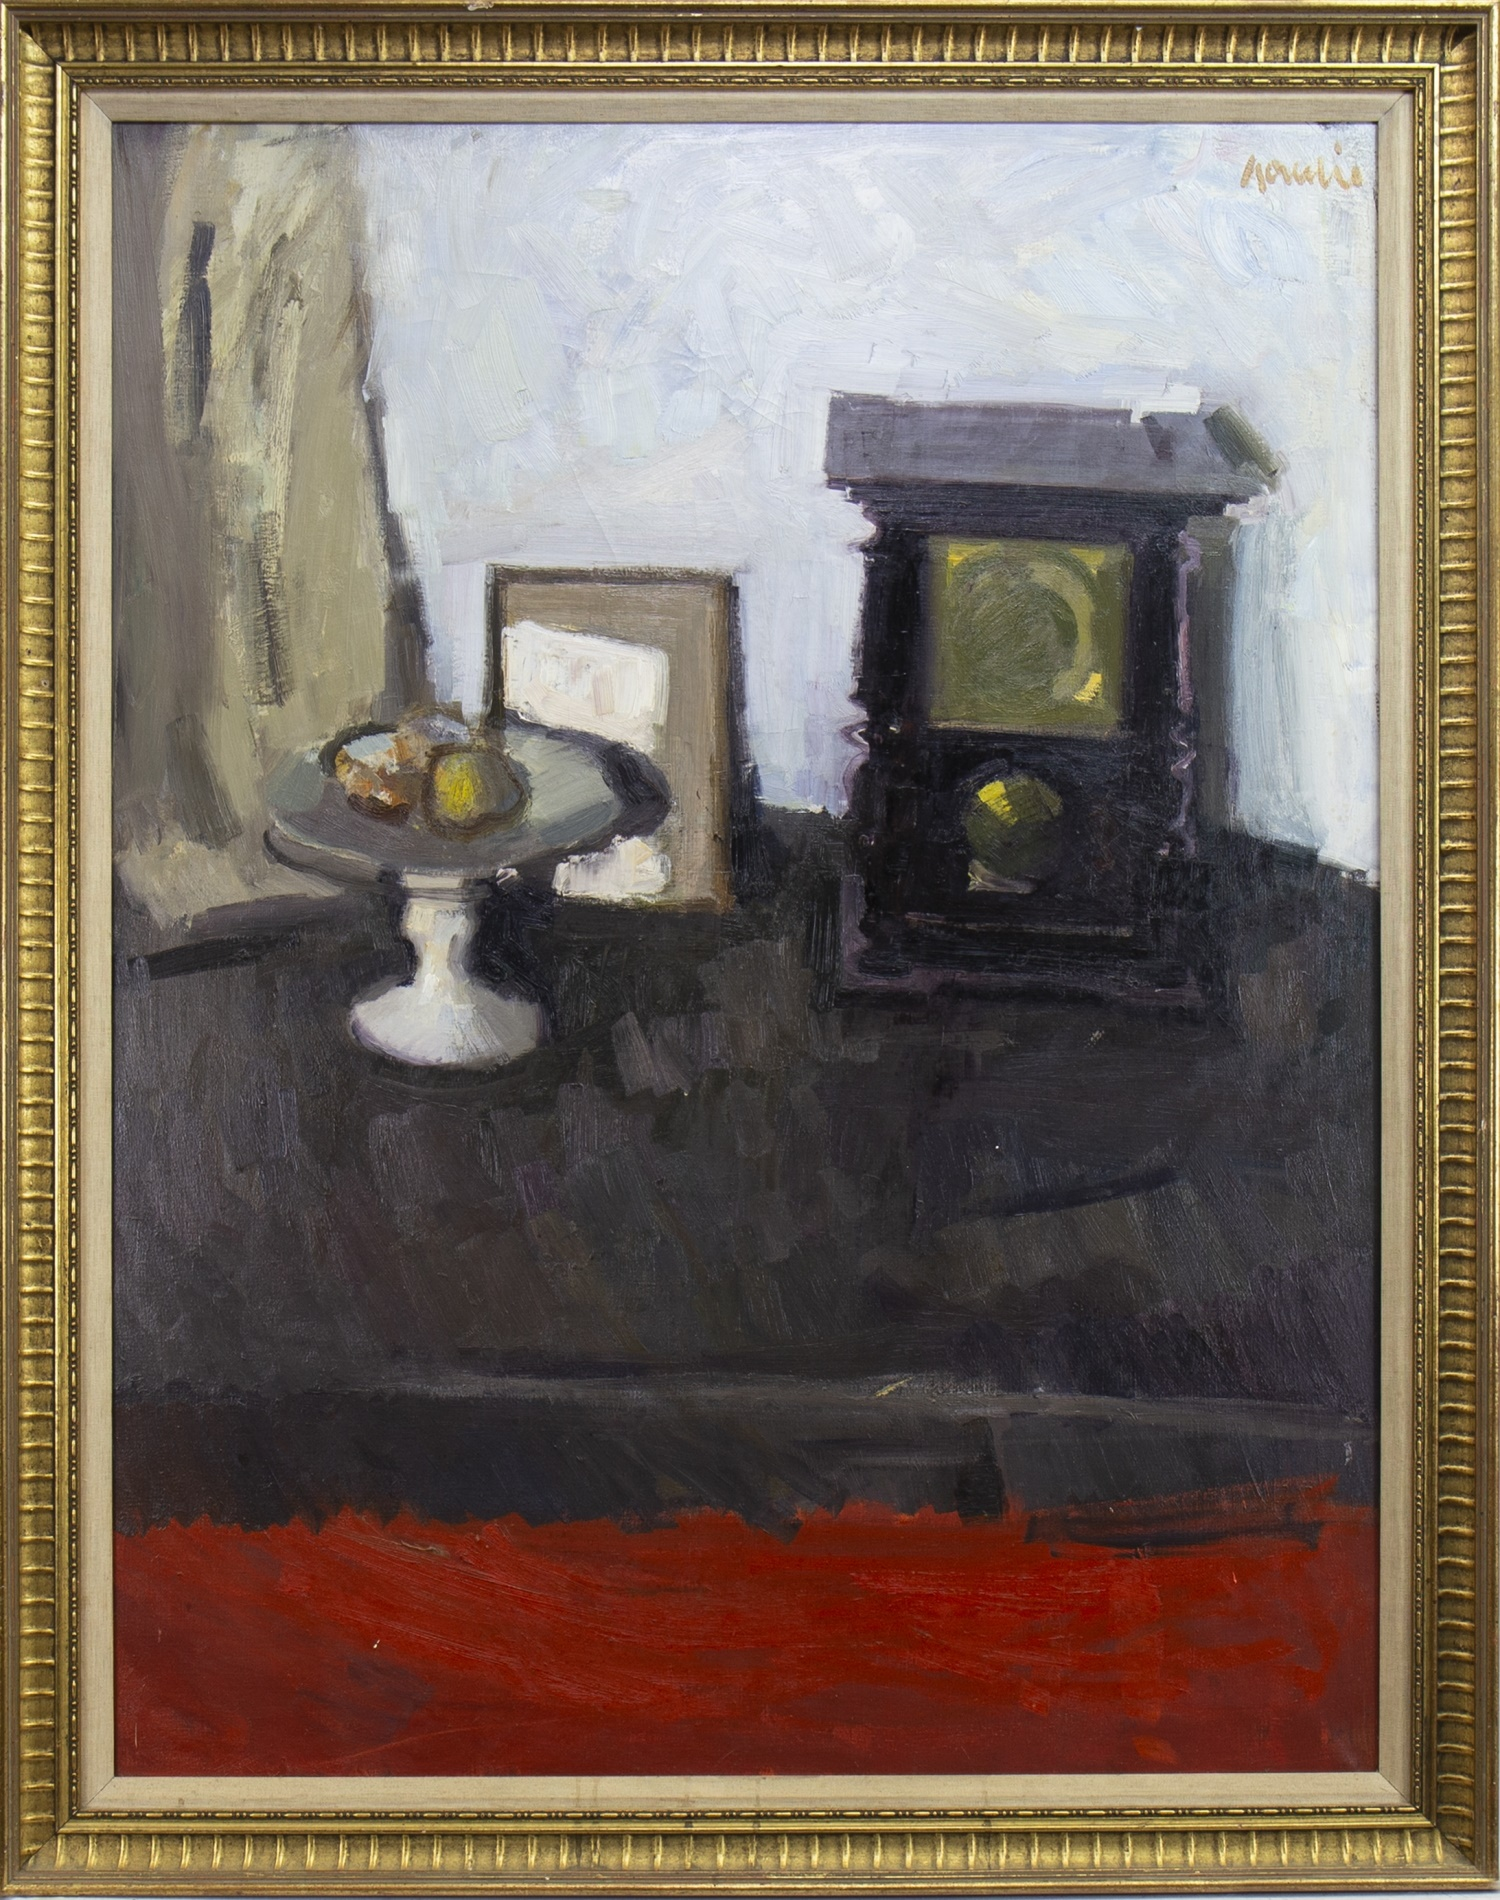 Lot 59 - FRUIT AND CLOCK STILL LIFE, AN OIL BY ALEXANDER GOUDIE